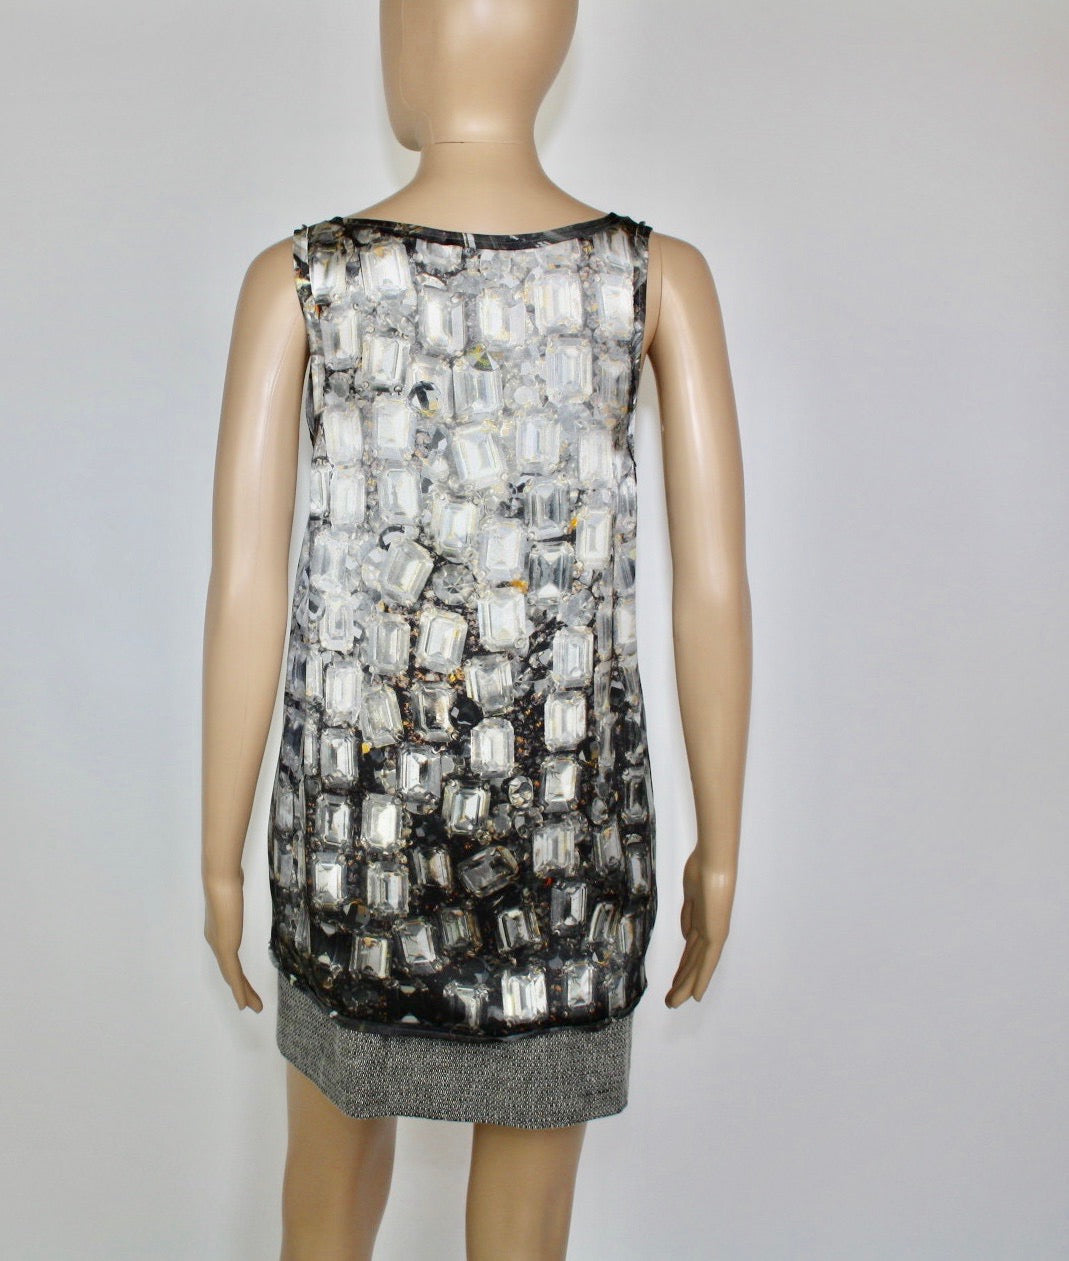 Lanvin Crystal Print Top - Iconics Preloved Luxury